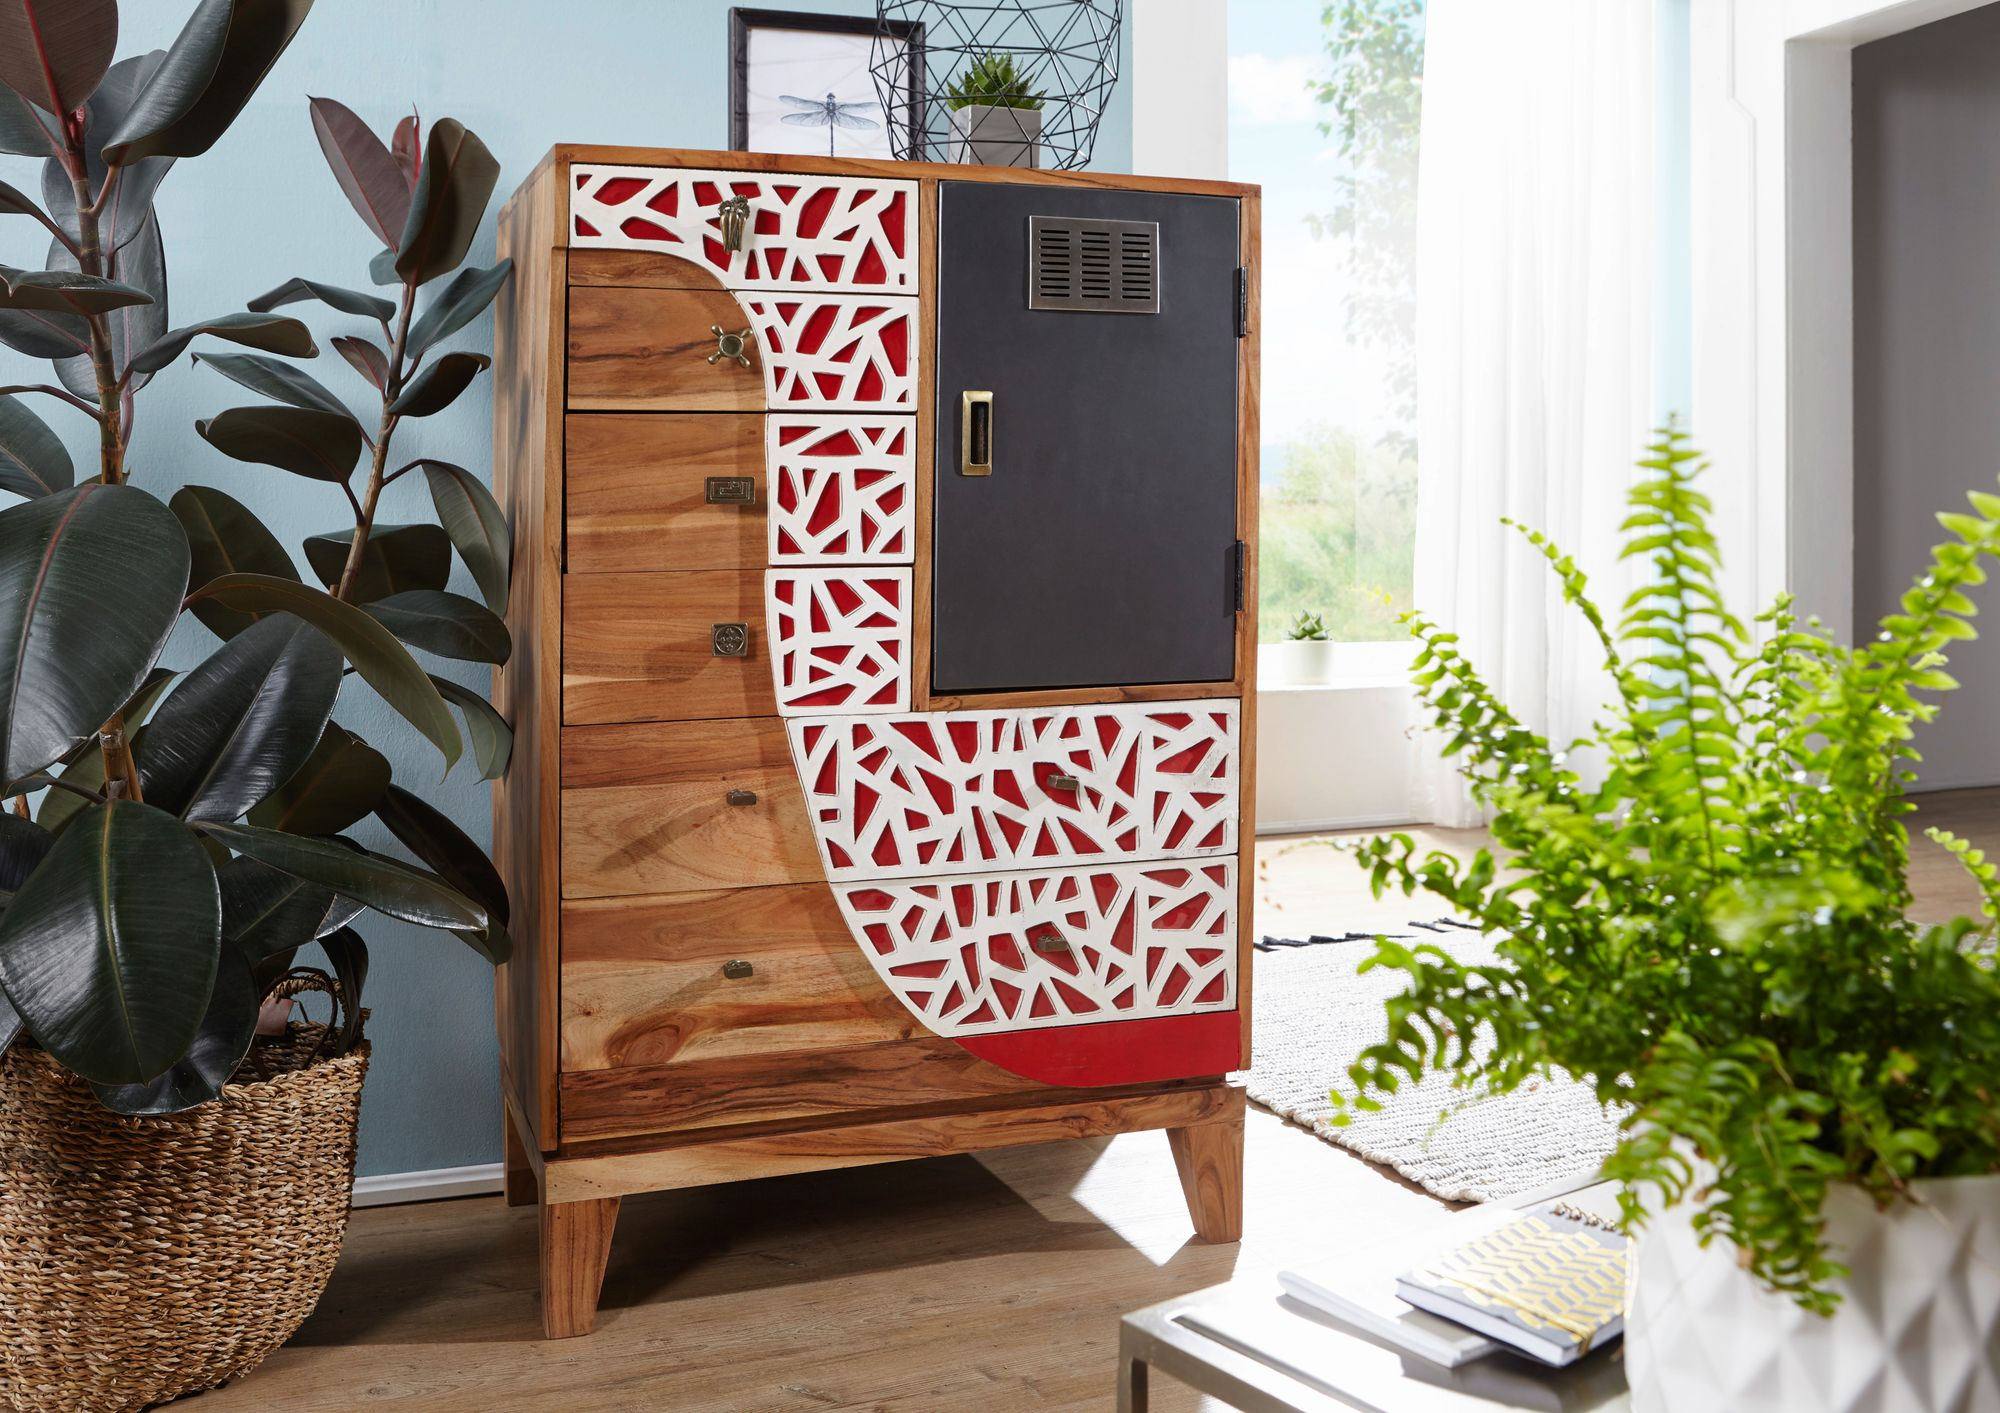 wohnling highboard anju 75x120x45 cm akazie massivholz landhaus holzschrank kleiner schrank. Black Bedroom Furniture Sets. Home Design Ideas